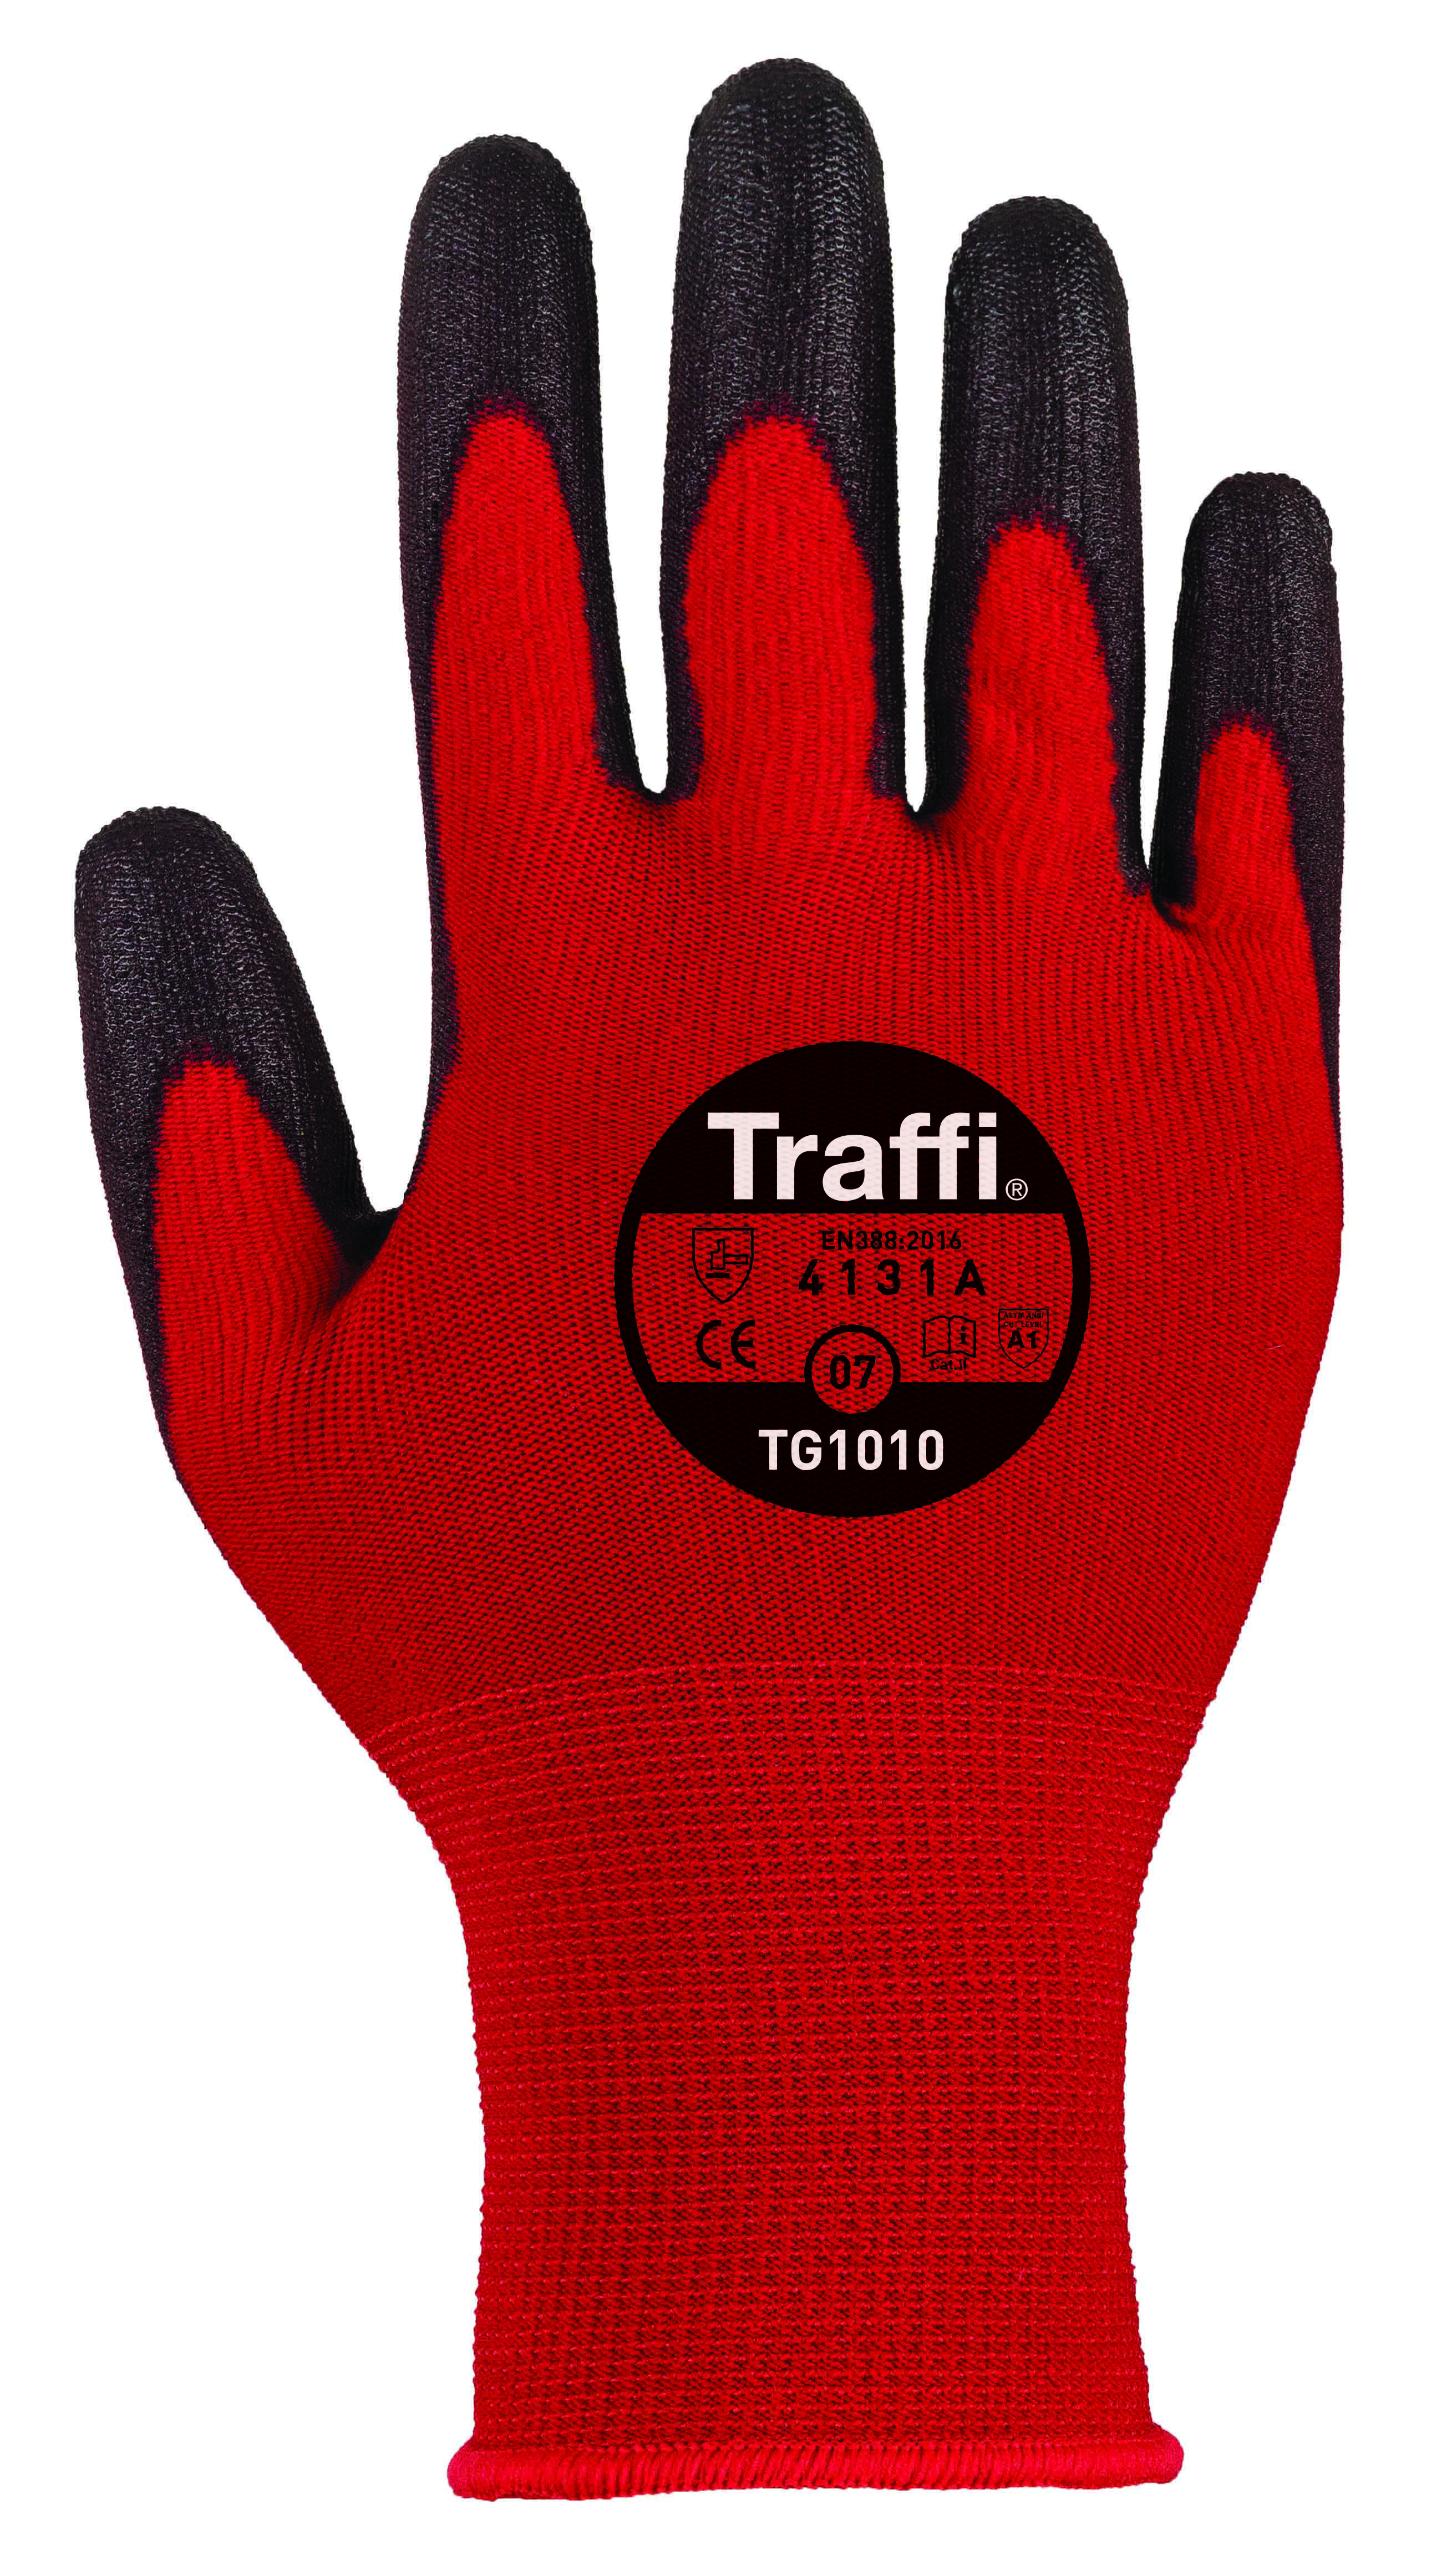 Traffiglove Tg1010-09 (pack Of 10 Pairs)